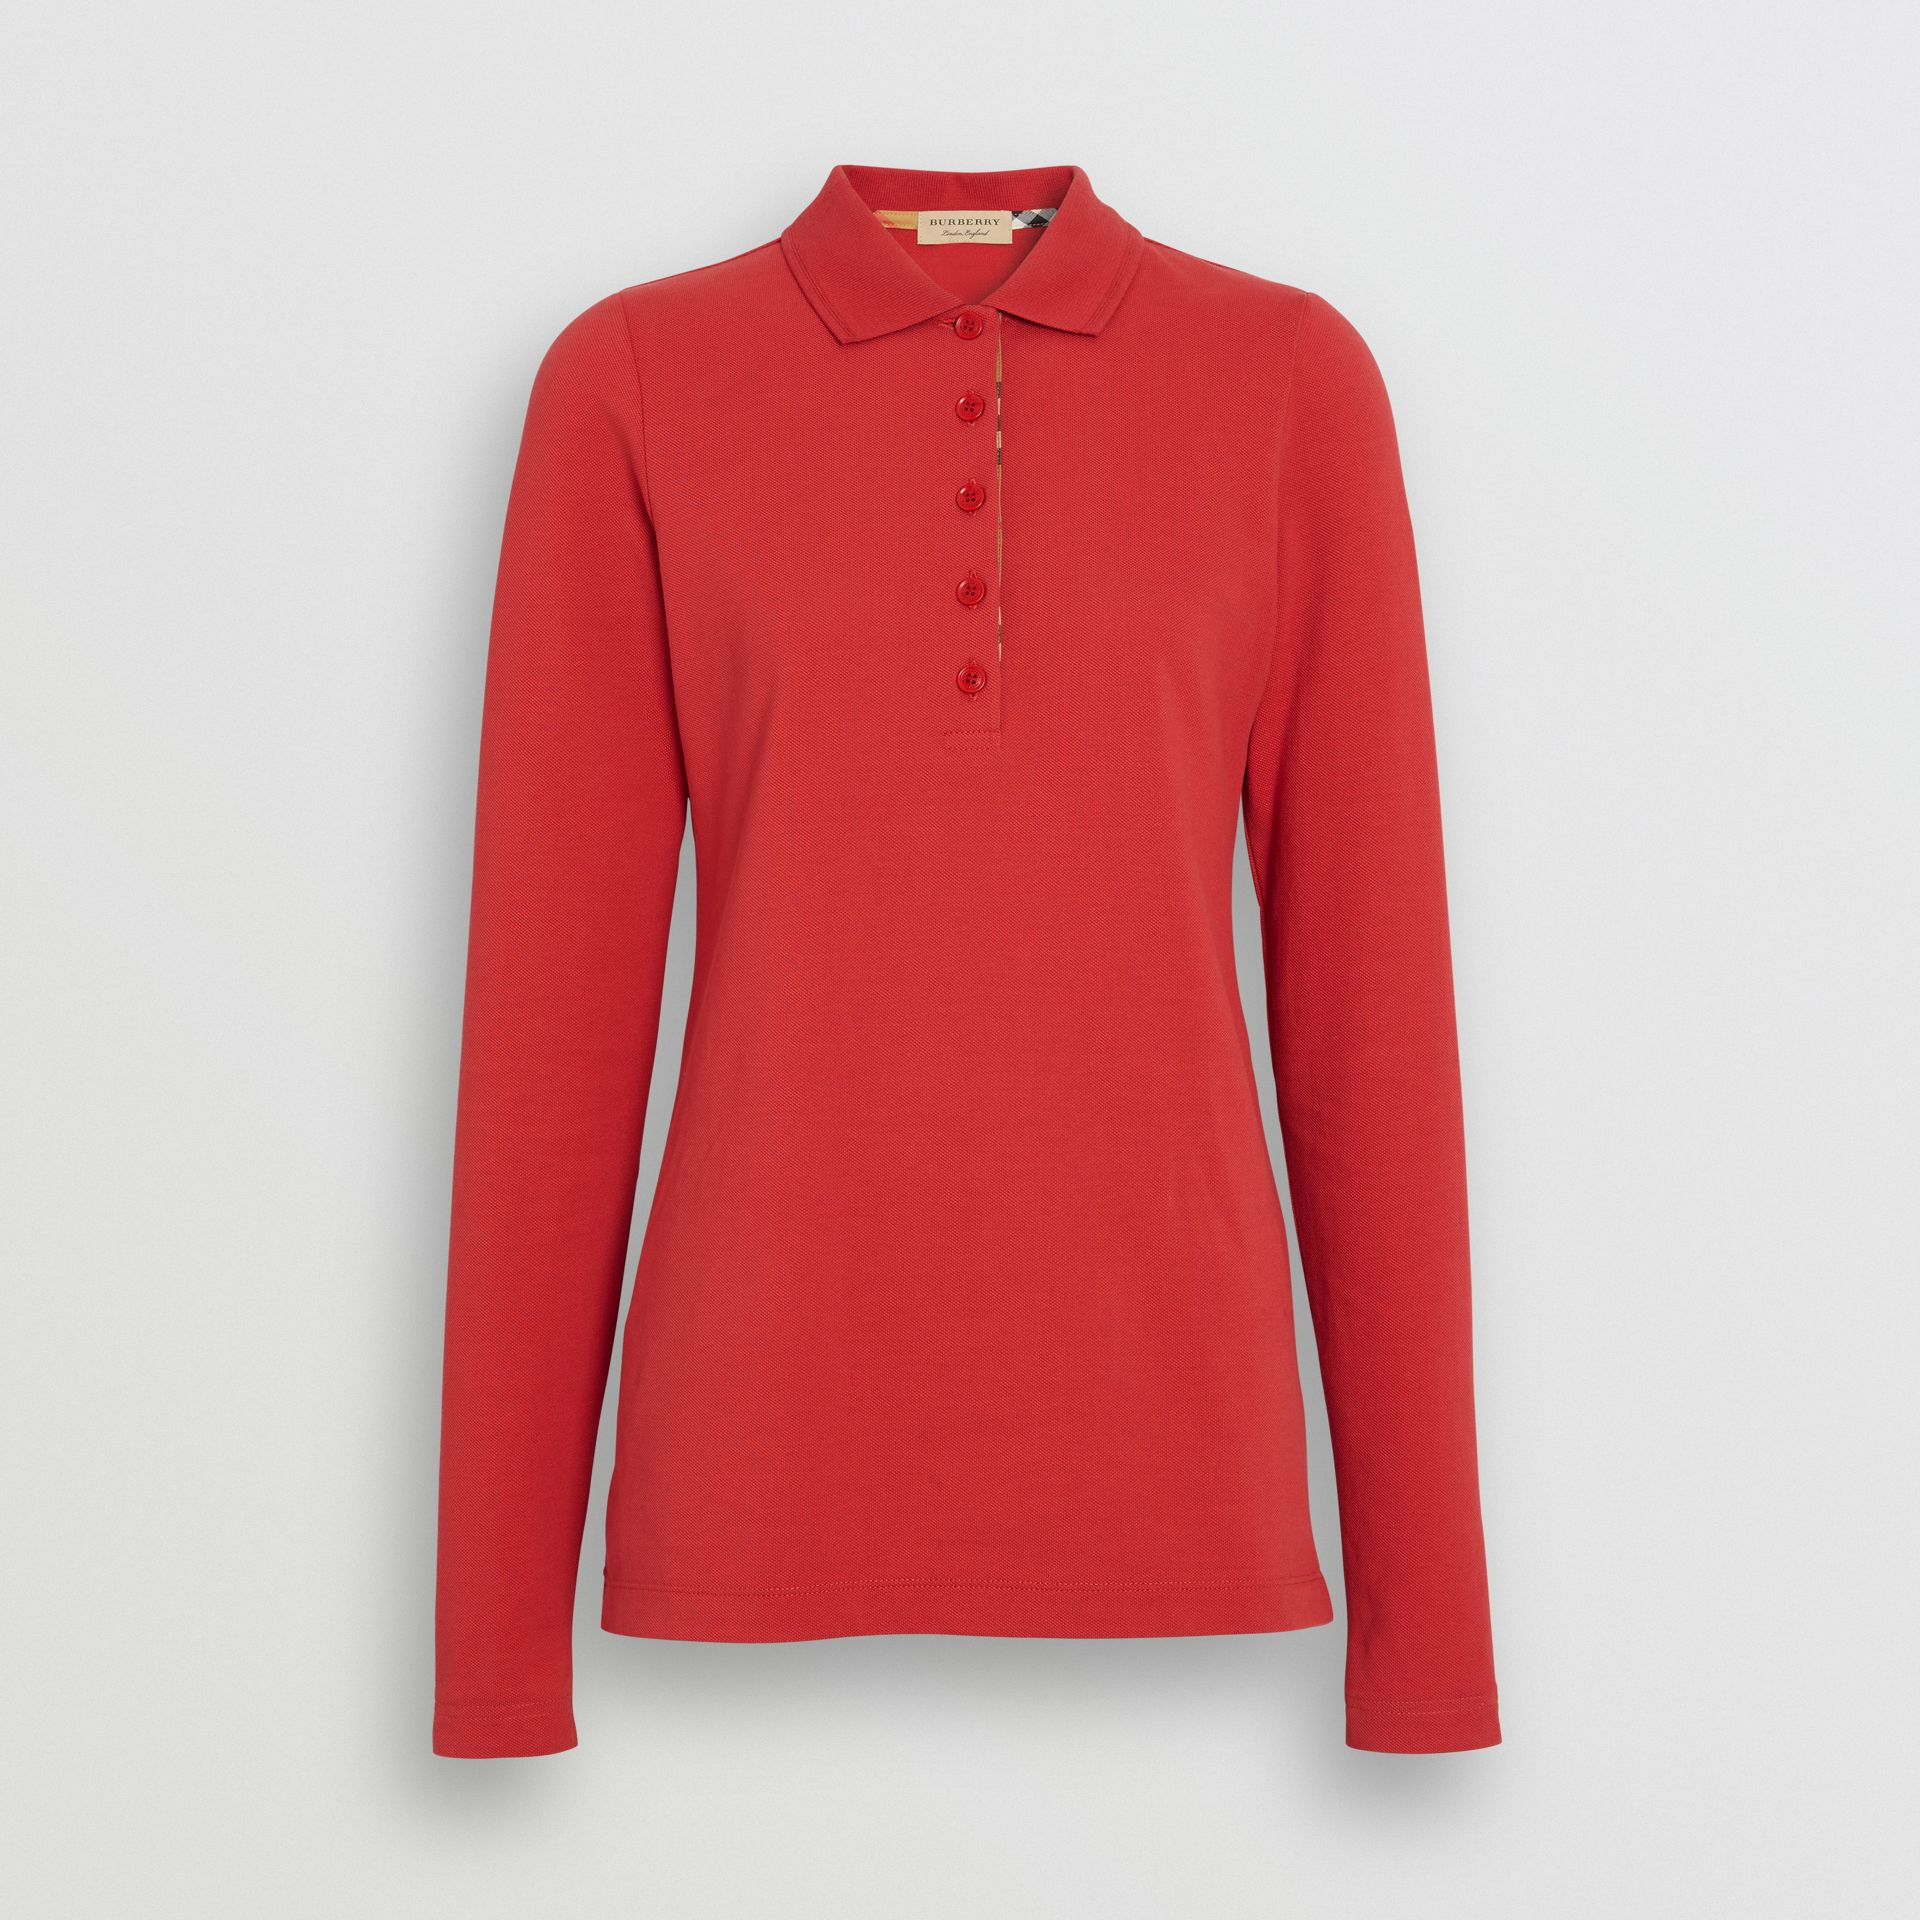 Long-sleeve Check Placket Cotton Piqué Polo Shirt in Bright Red - Women | Burberry United Kingdom - gallery image 3